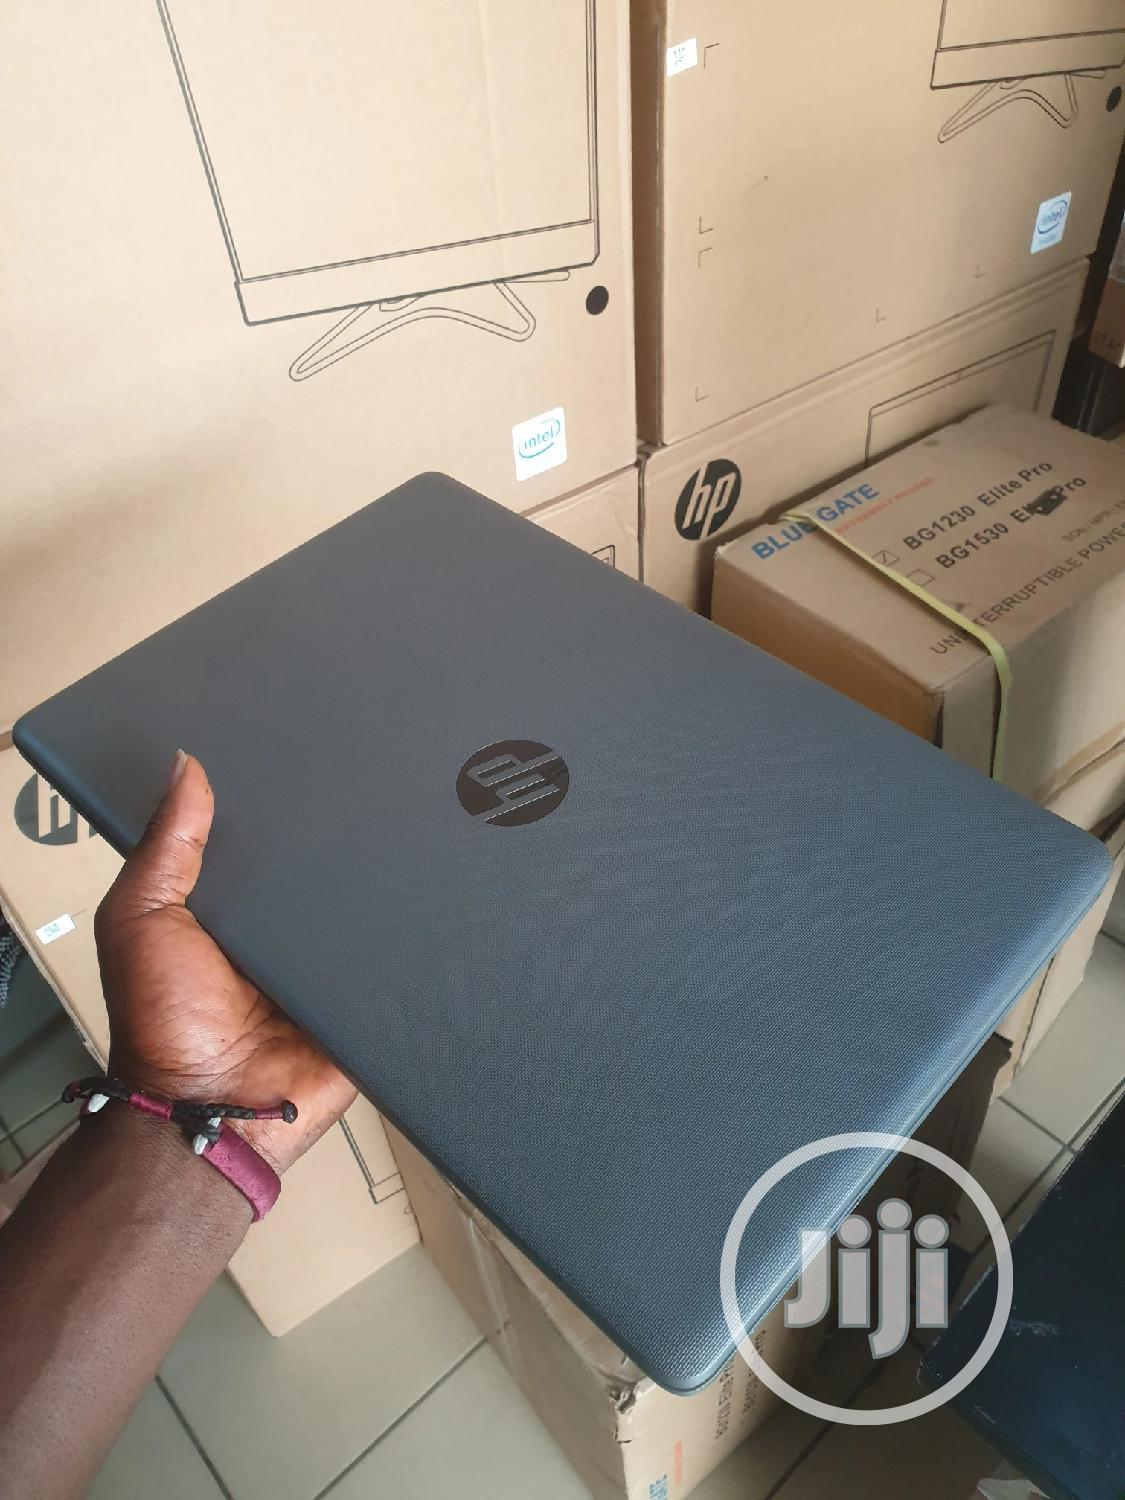 New Laptop HP 250 G7 4GB Intel Celeron HDD 1T | Laptops & Computers for sale in Wuse 2, Abuja (FCT) State, Nigeria